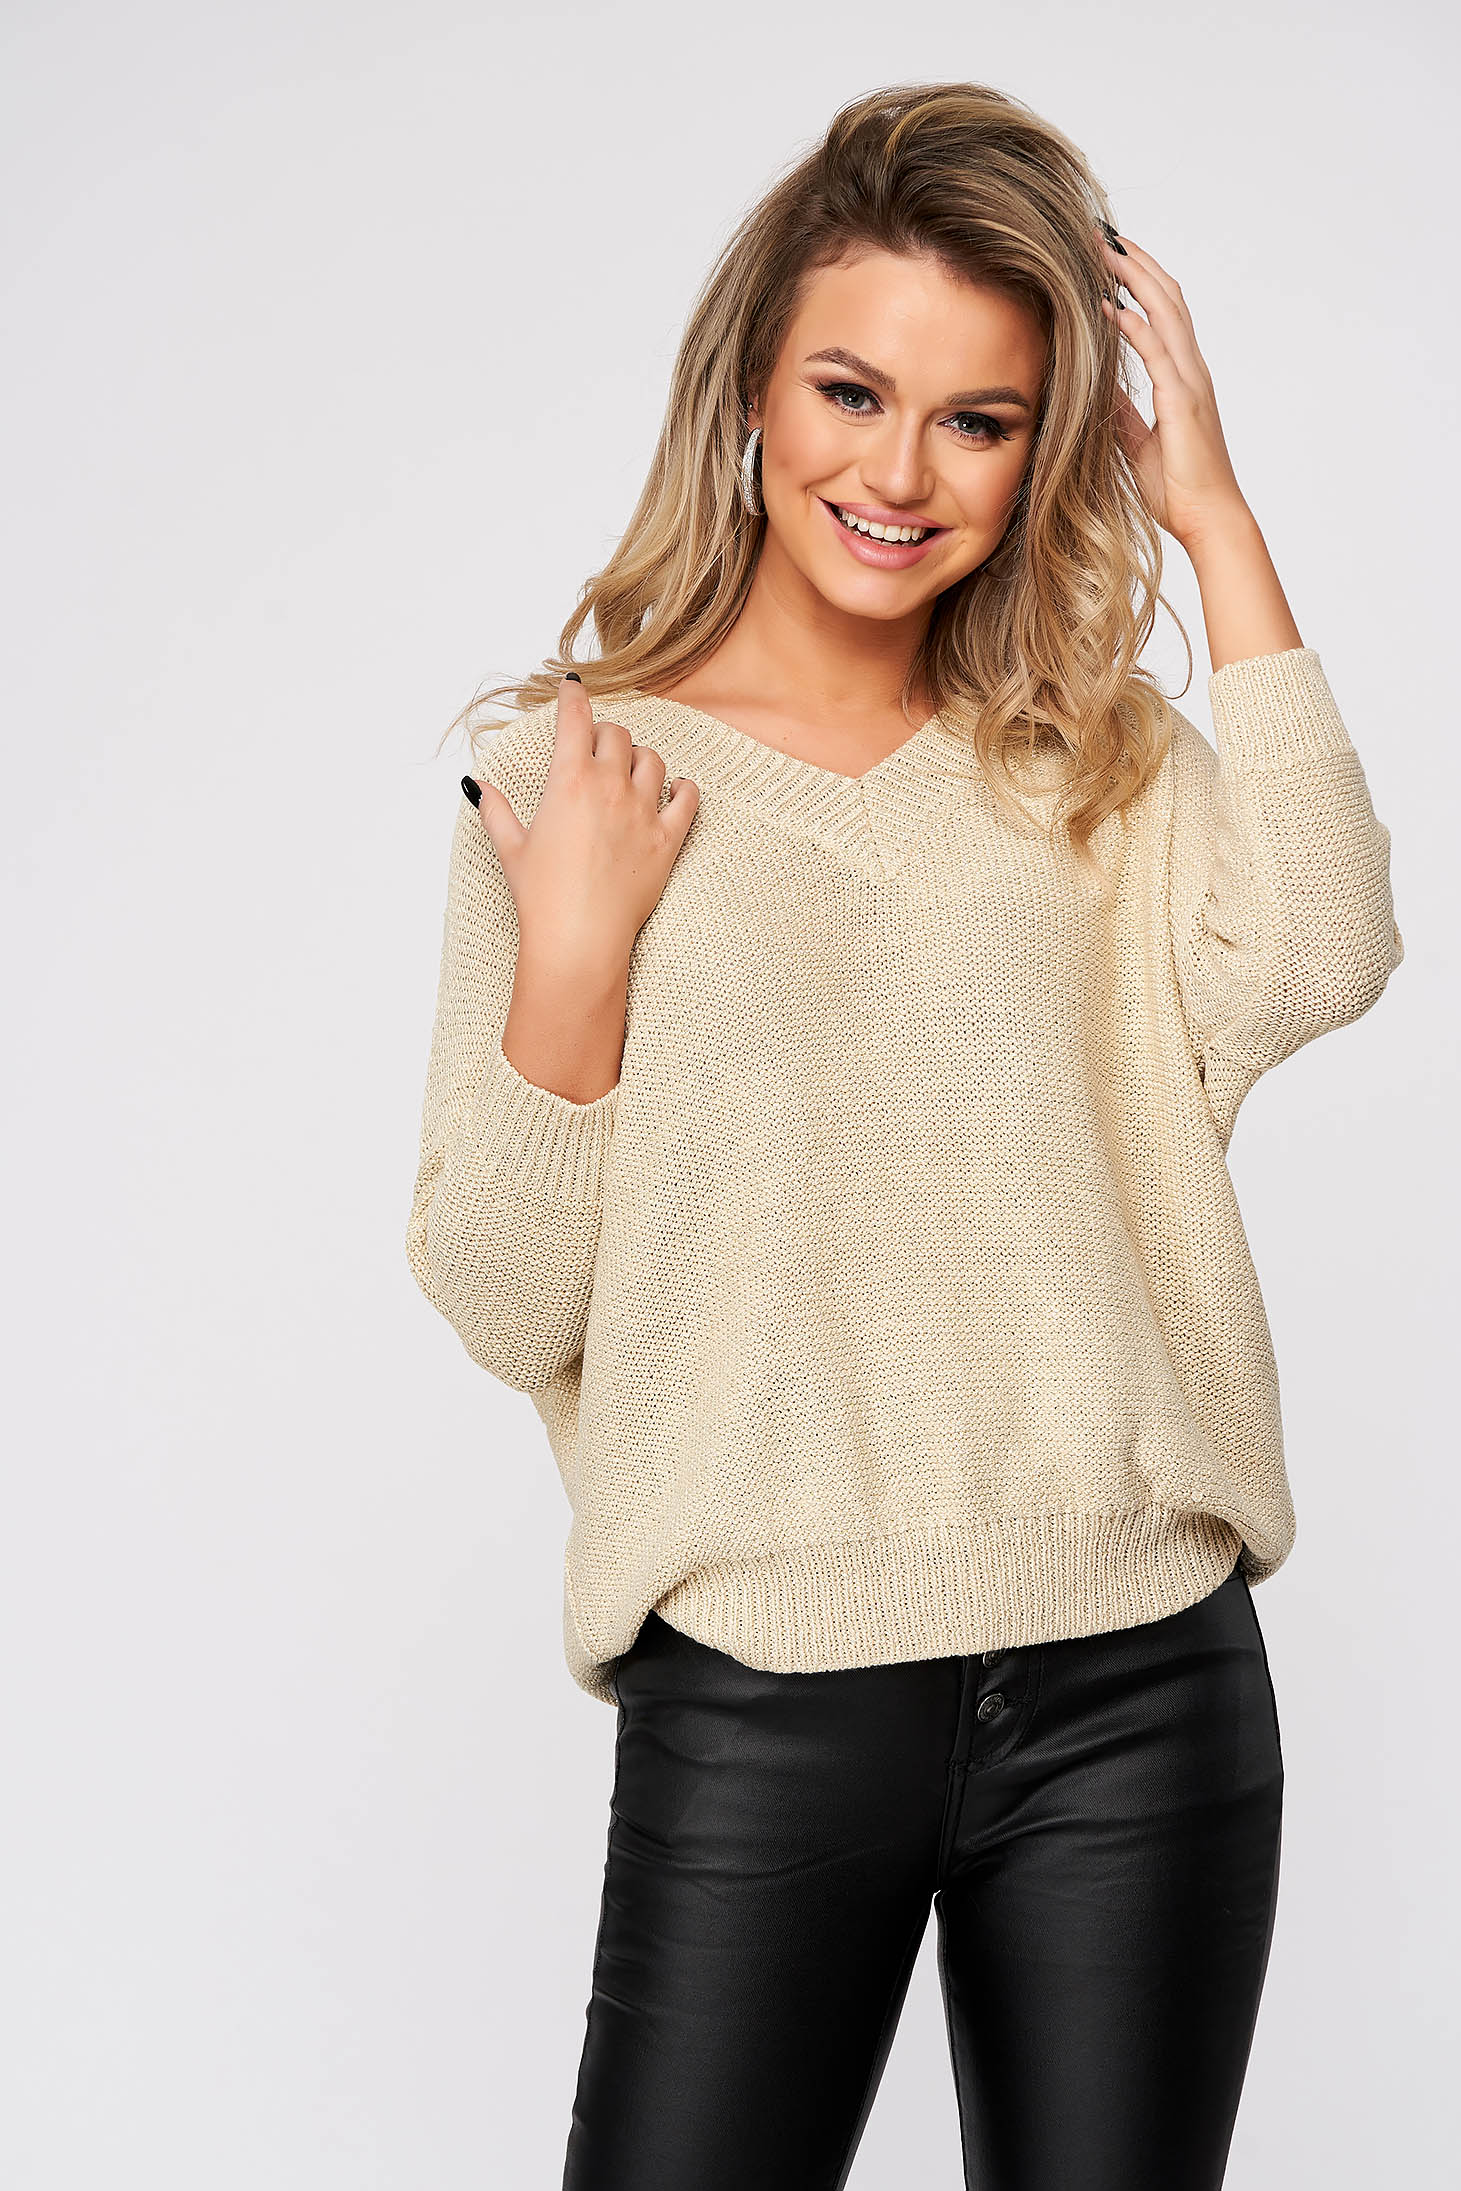 Peach sweater casual flared with lame thread knitted fabric